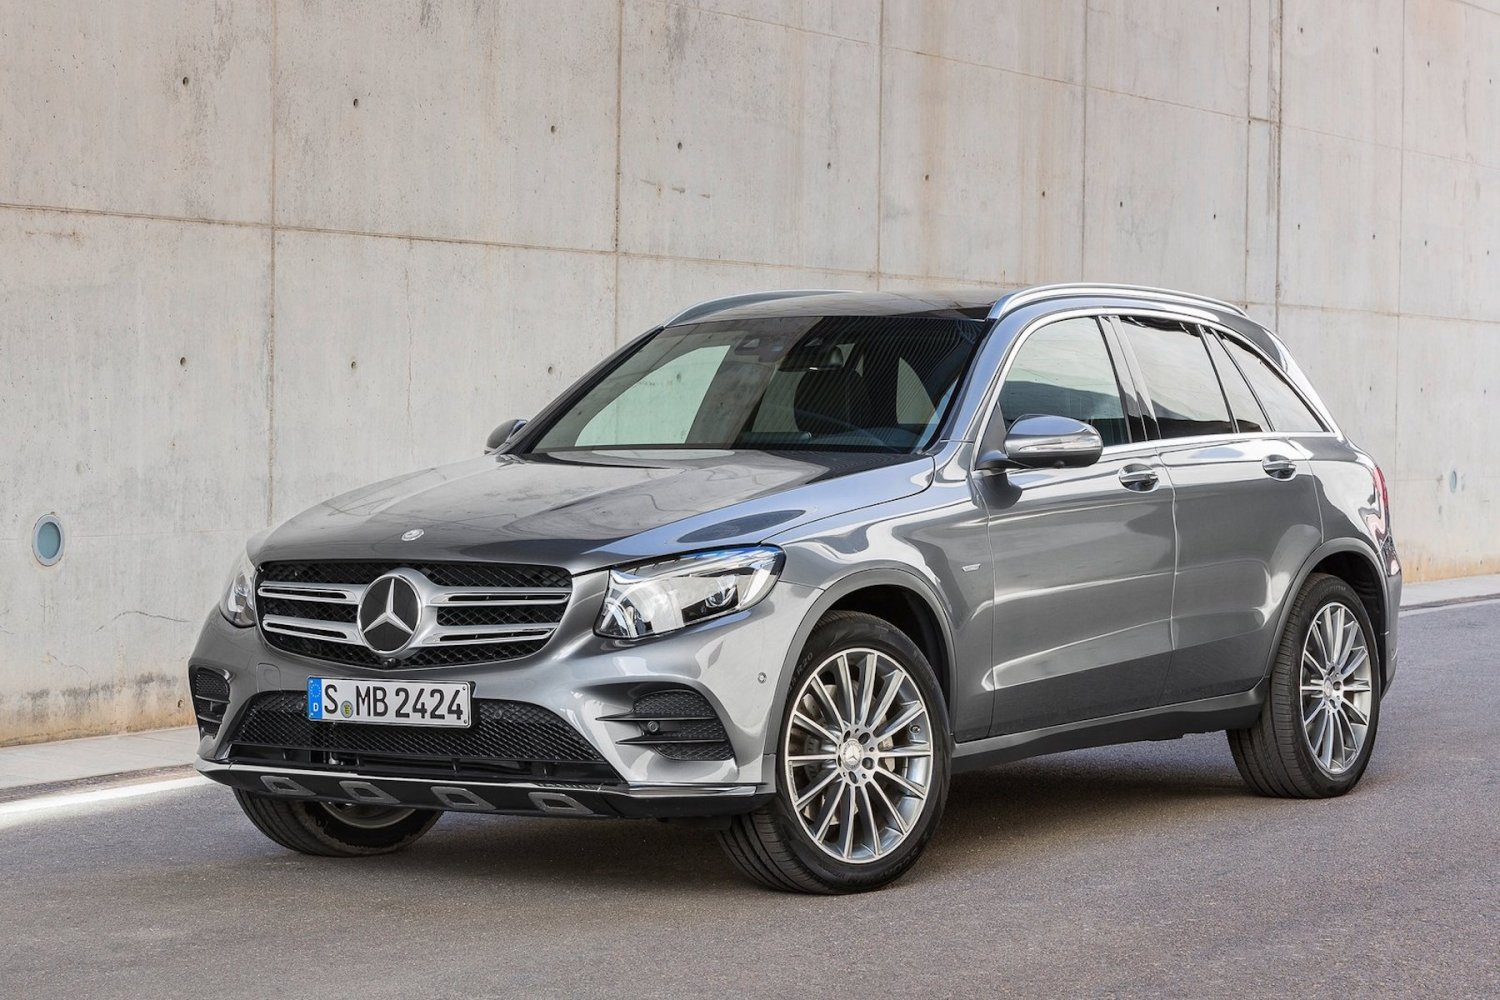 Mercedes-Benz forced to recall cars over diesel emissions | Motoring